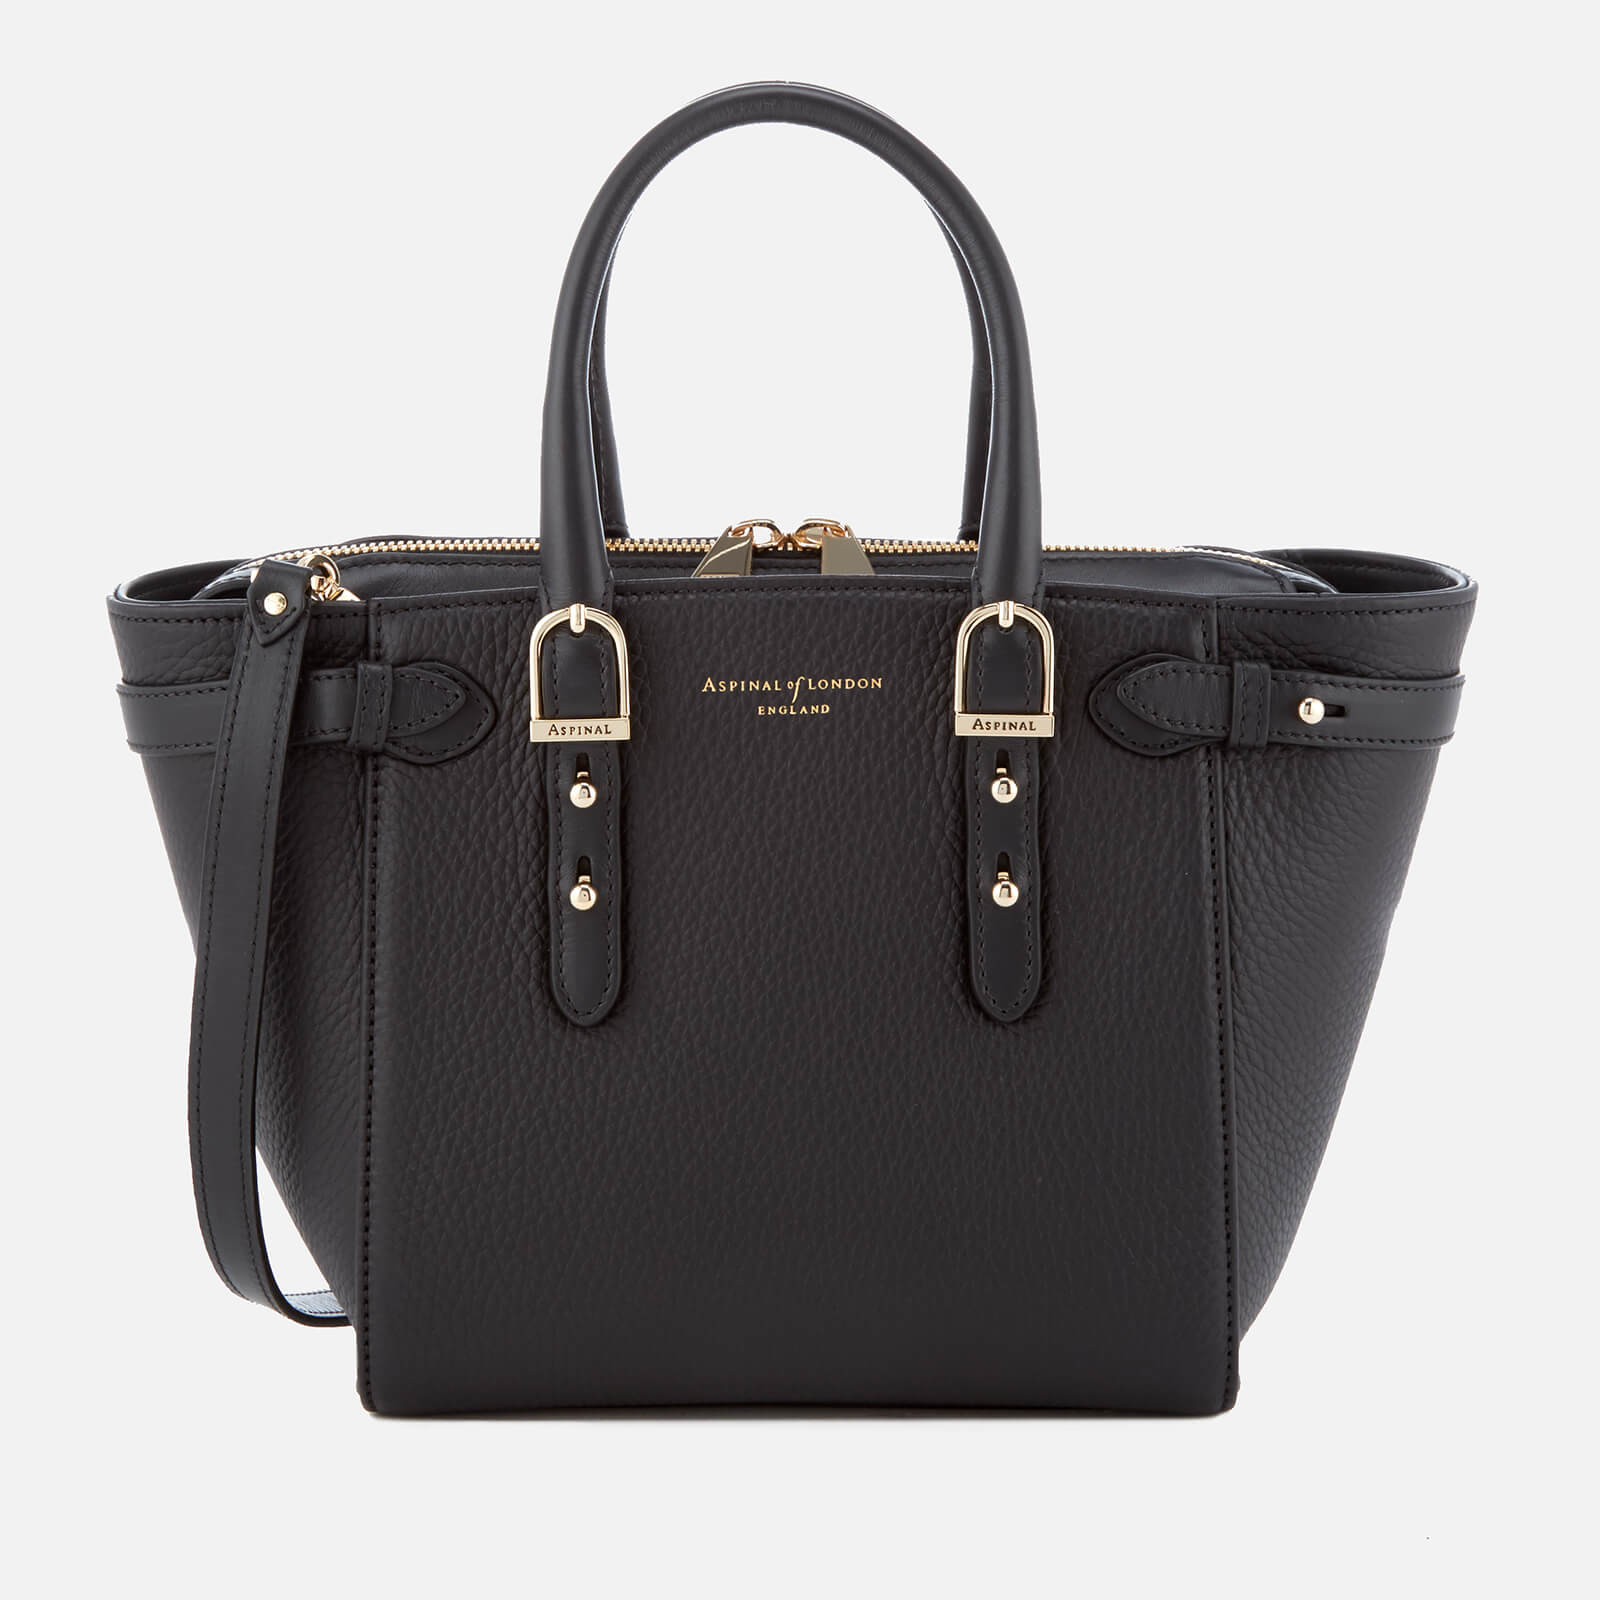 Aspinal of London Women's Marylebone Mini Tote Bag - Black Pebble的圖片搜尋結果